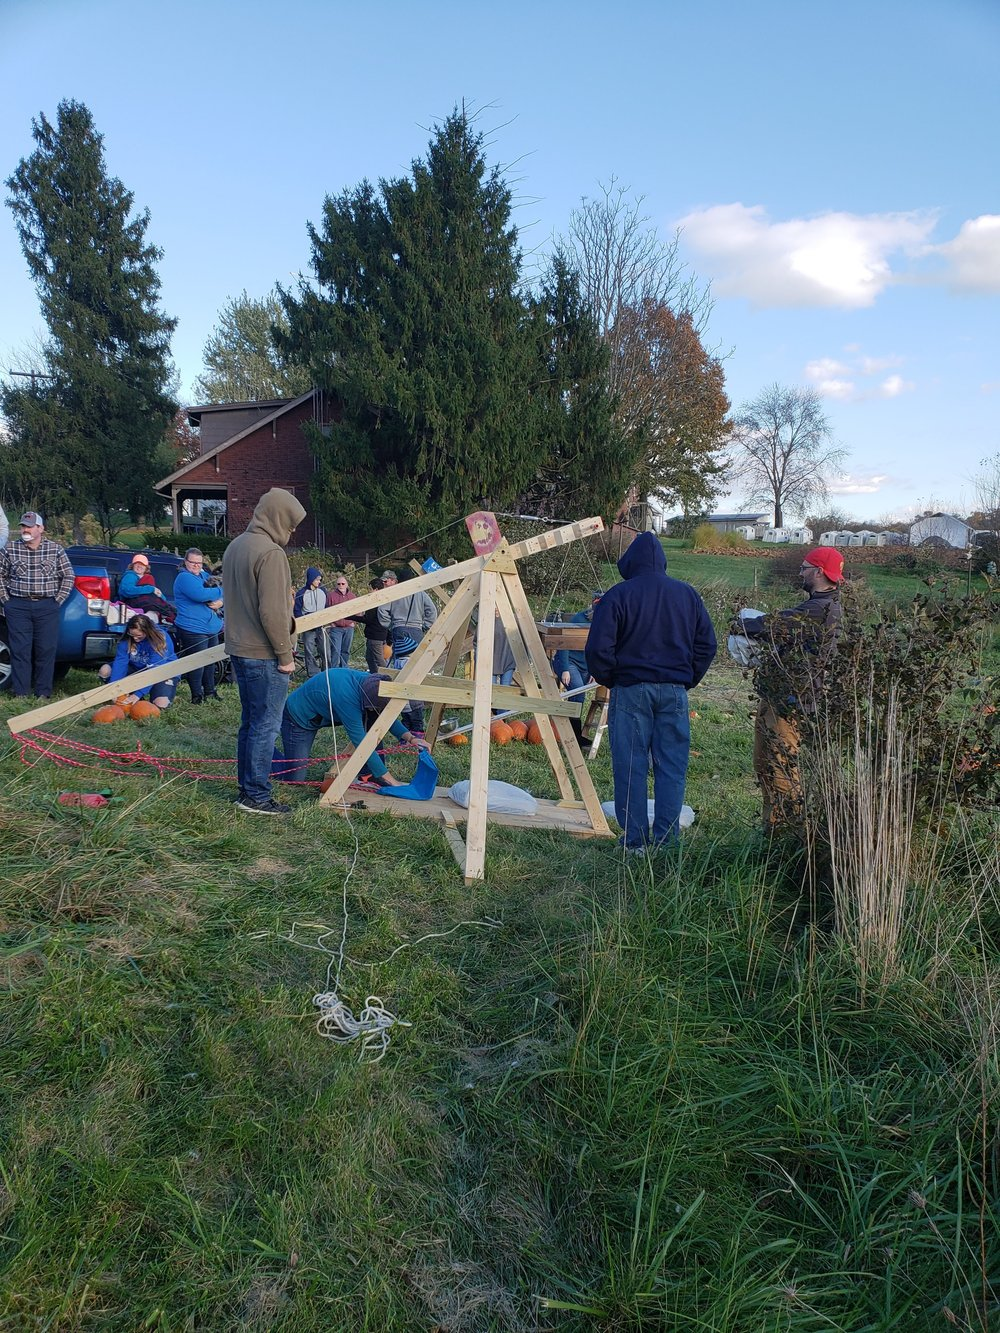 The trebuchet being prepped to launch.